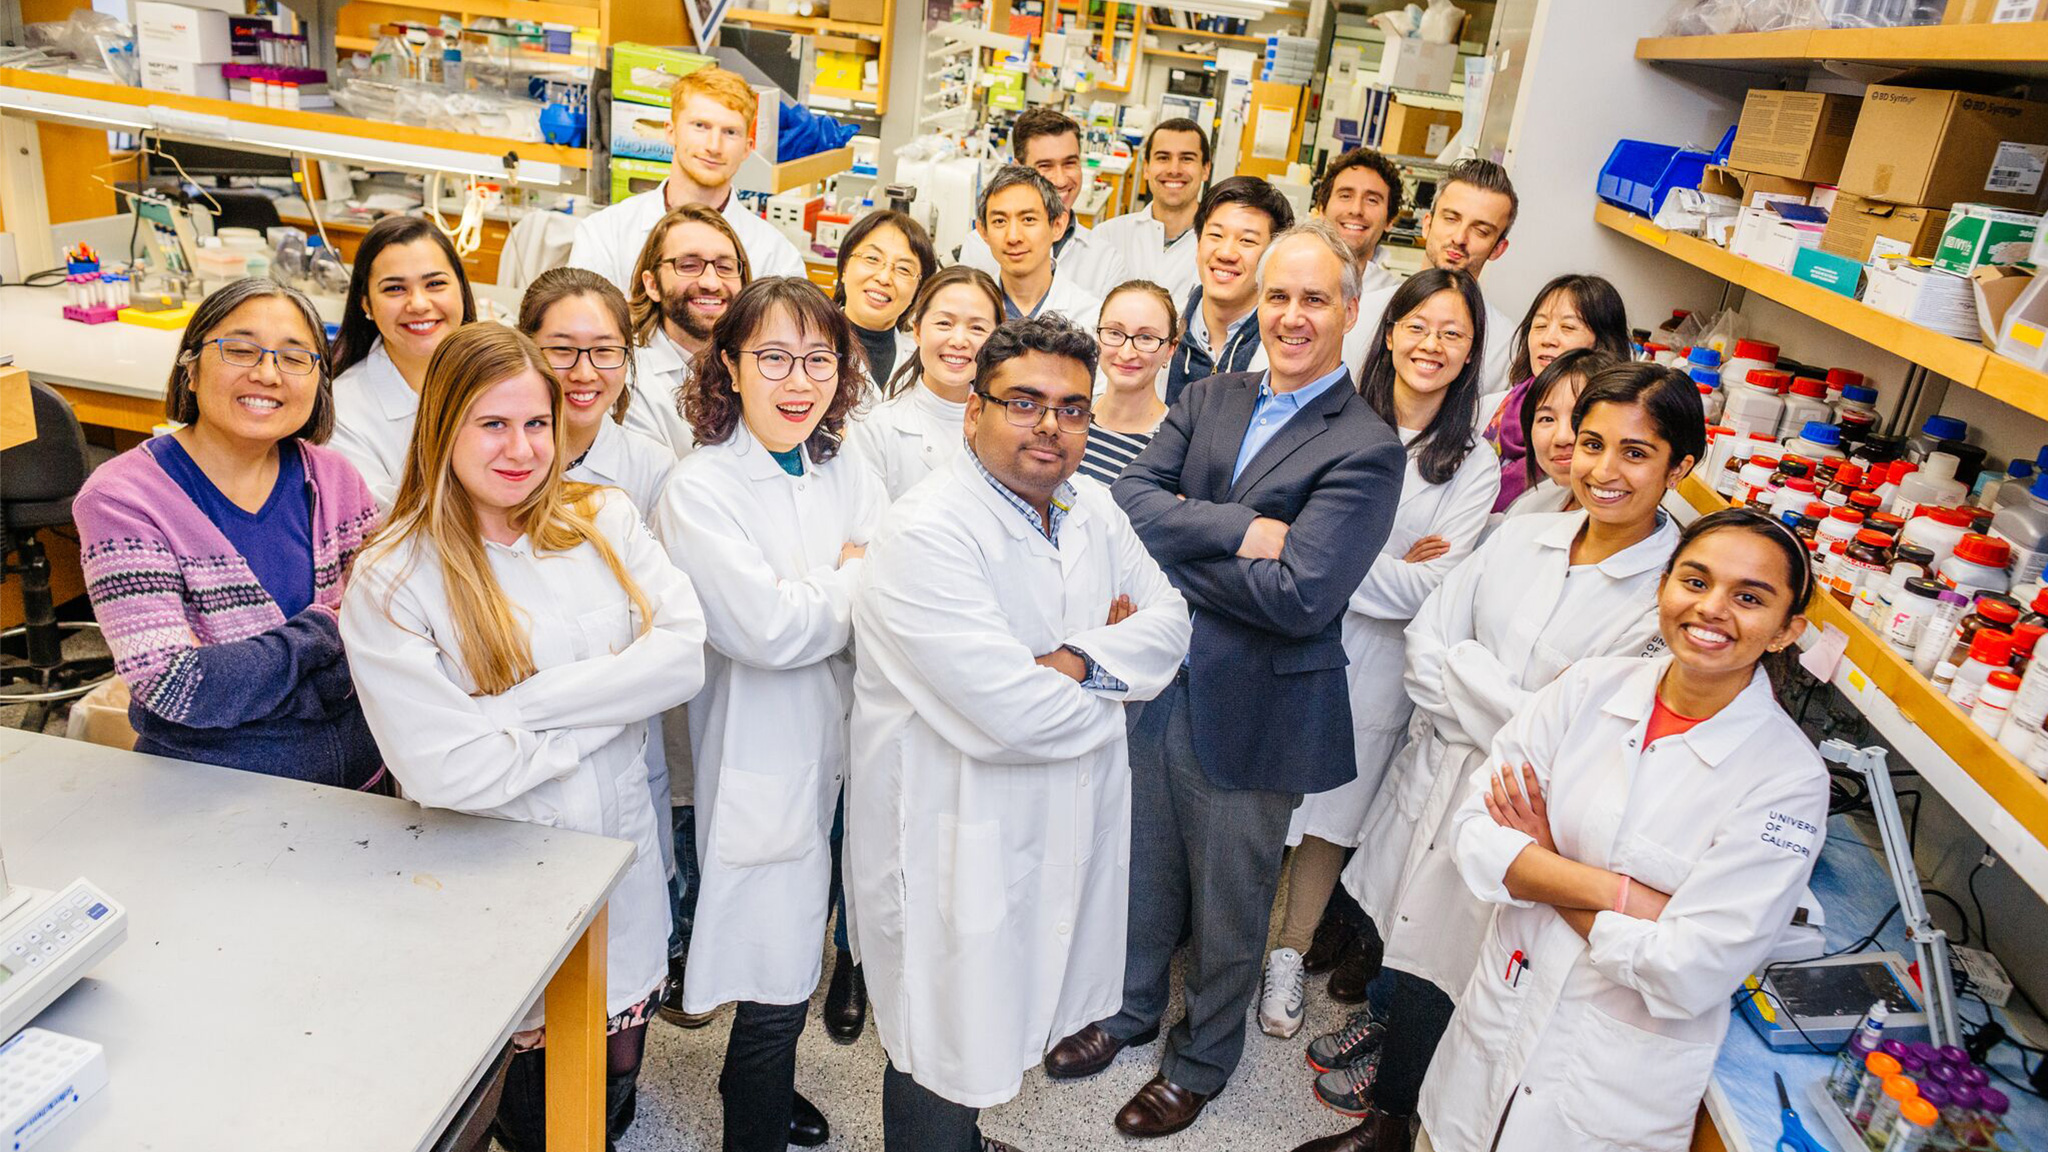 Professor Dan Geschwind smiles along with students in his lab.